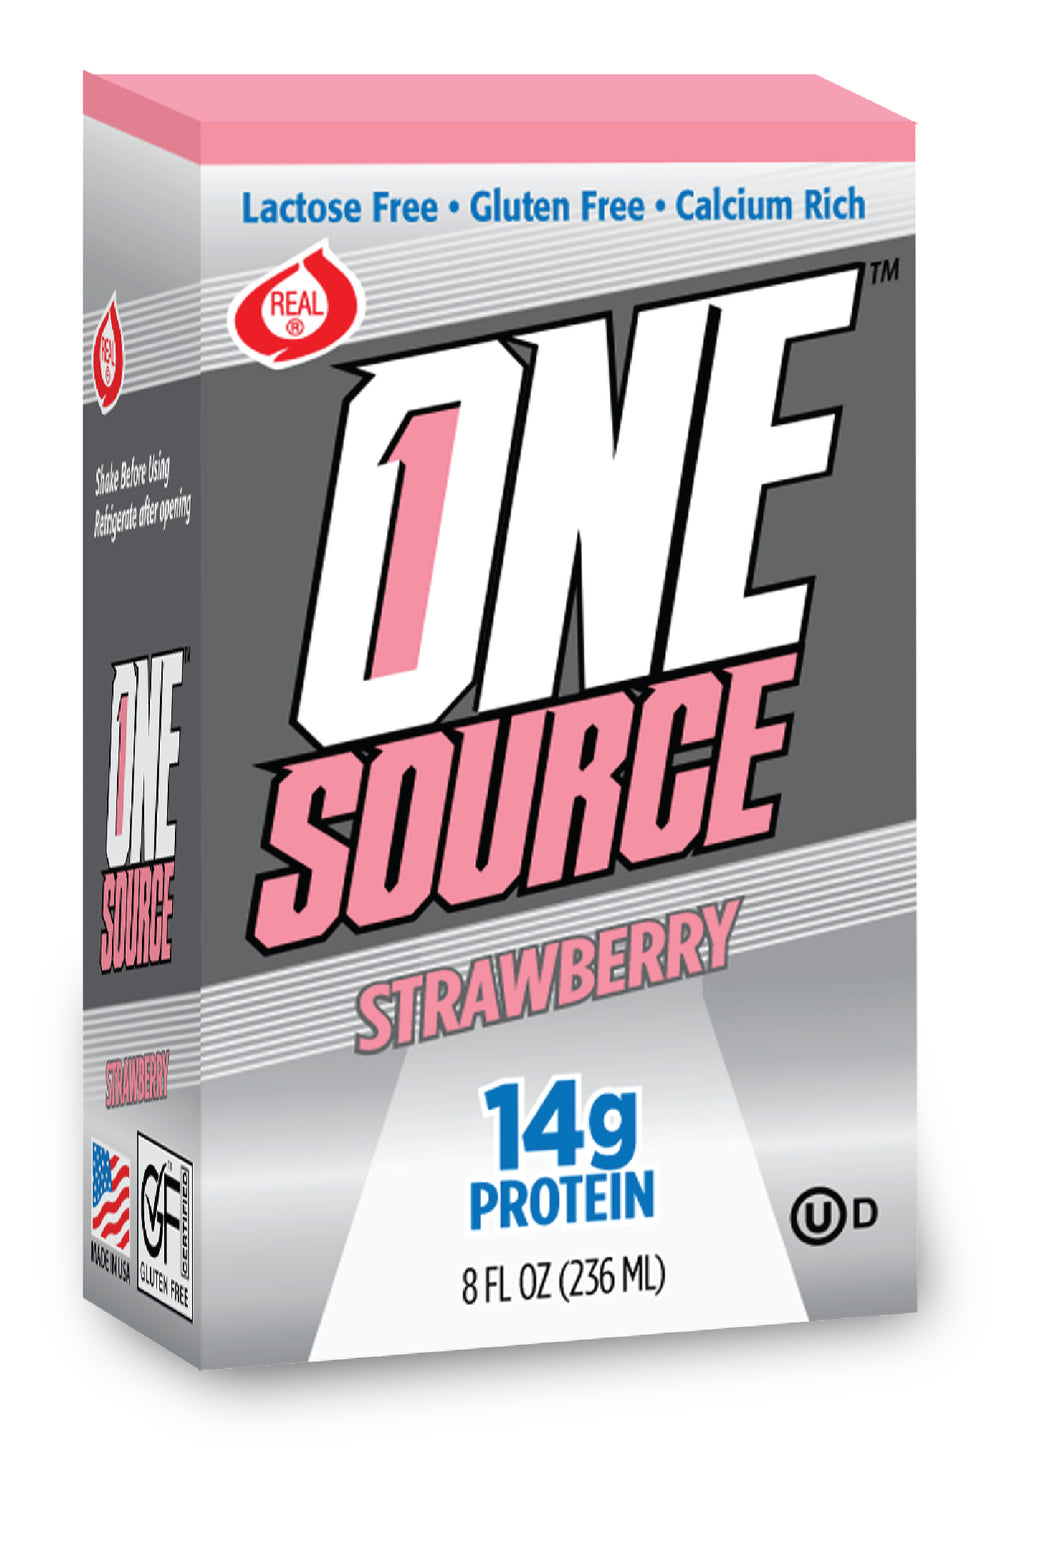 ONEsource™ - Strawberry - Pack of 3 - 8 Oz Container - Free Shipping